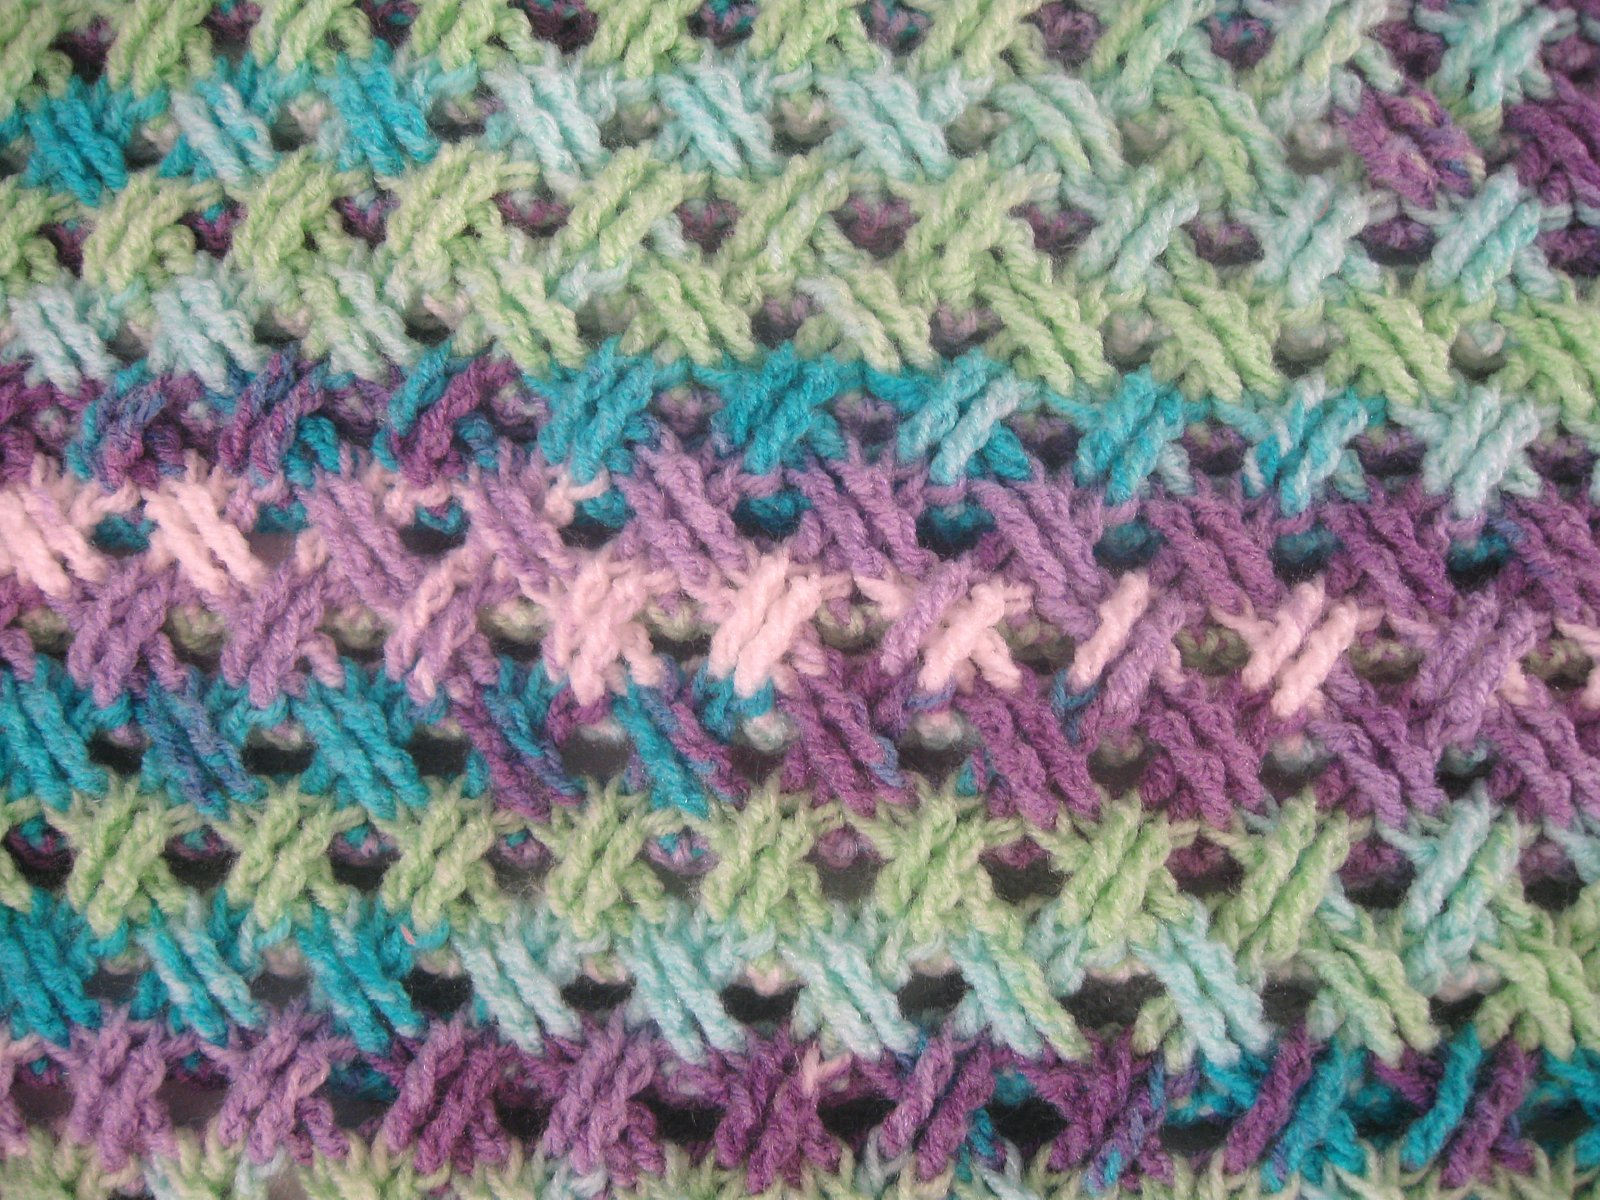 Crochet Stitches With Pattern : ... /2014/10/Interweave-Cable-Stitch-Shot-of-stitch-Web-display.jpg-image